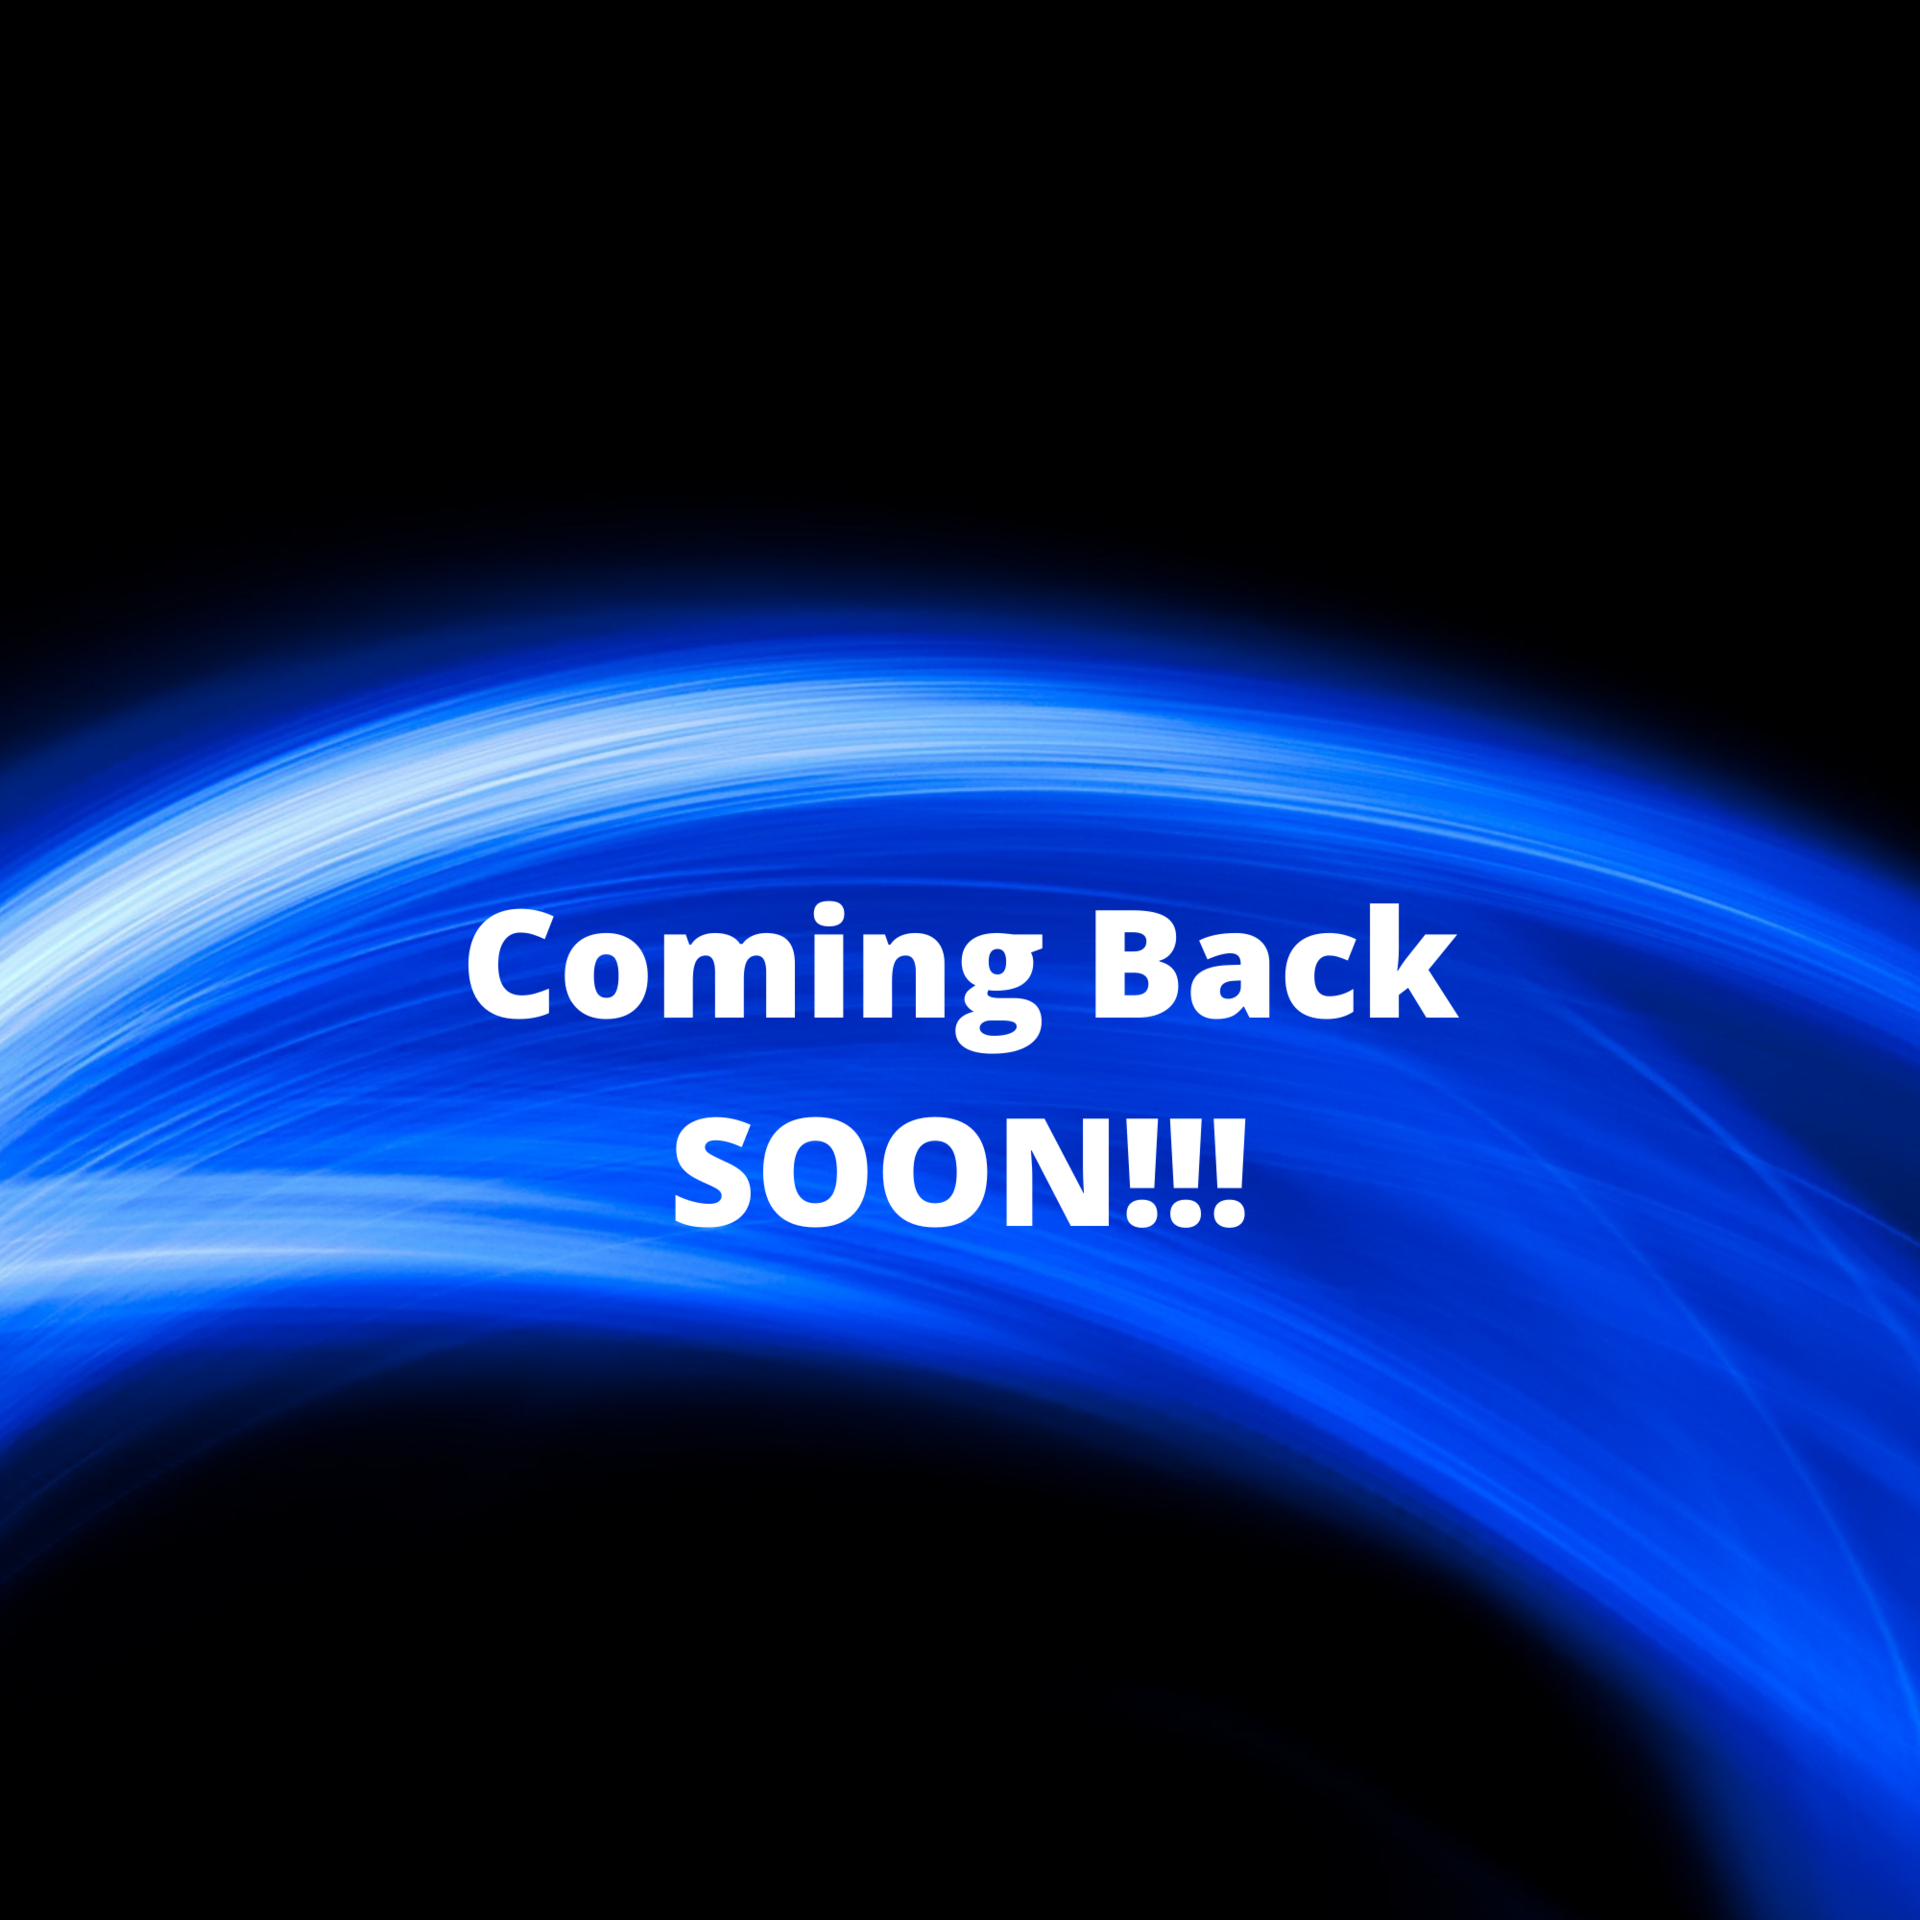 Coming Back soon